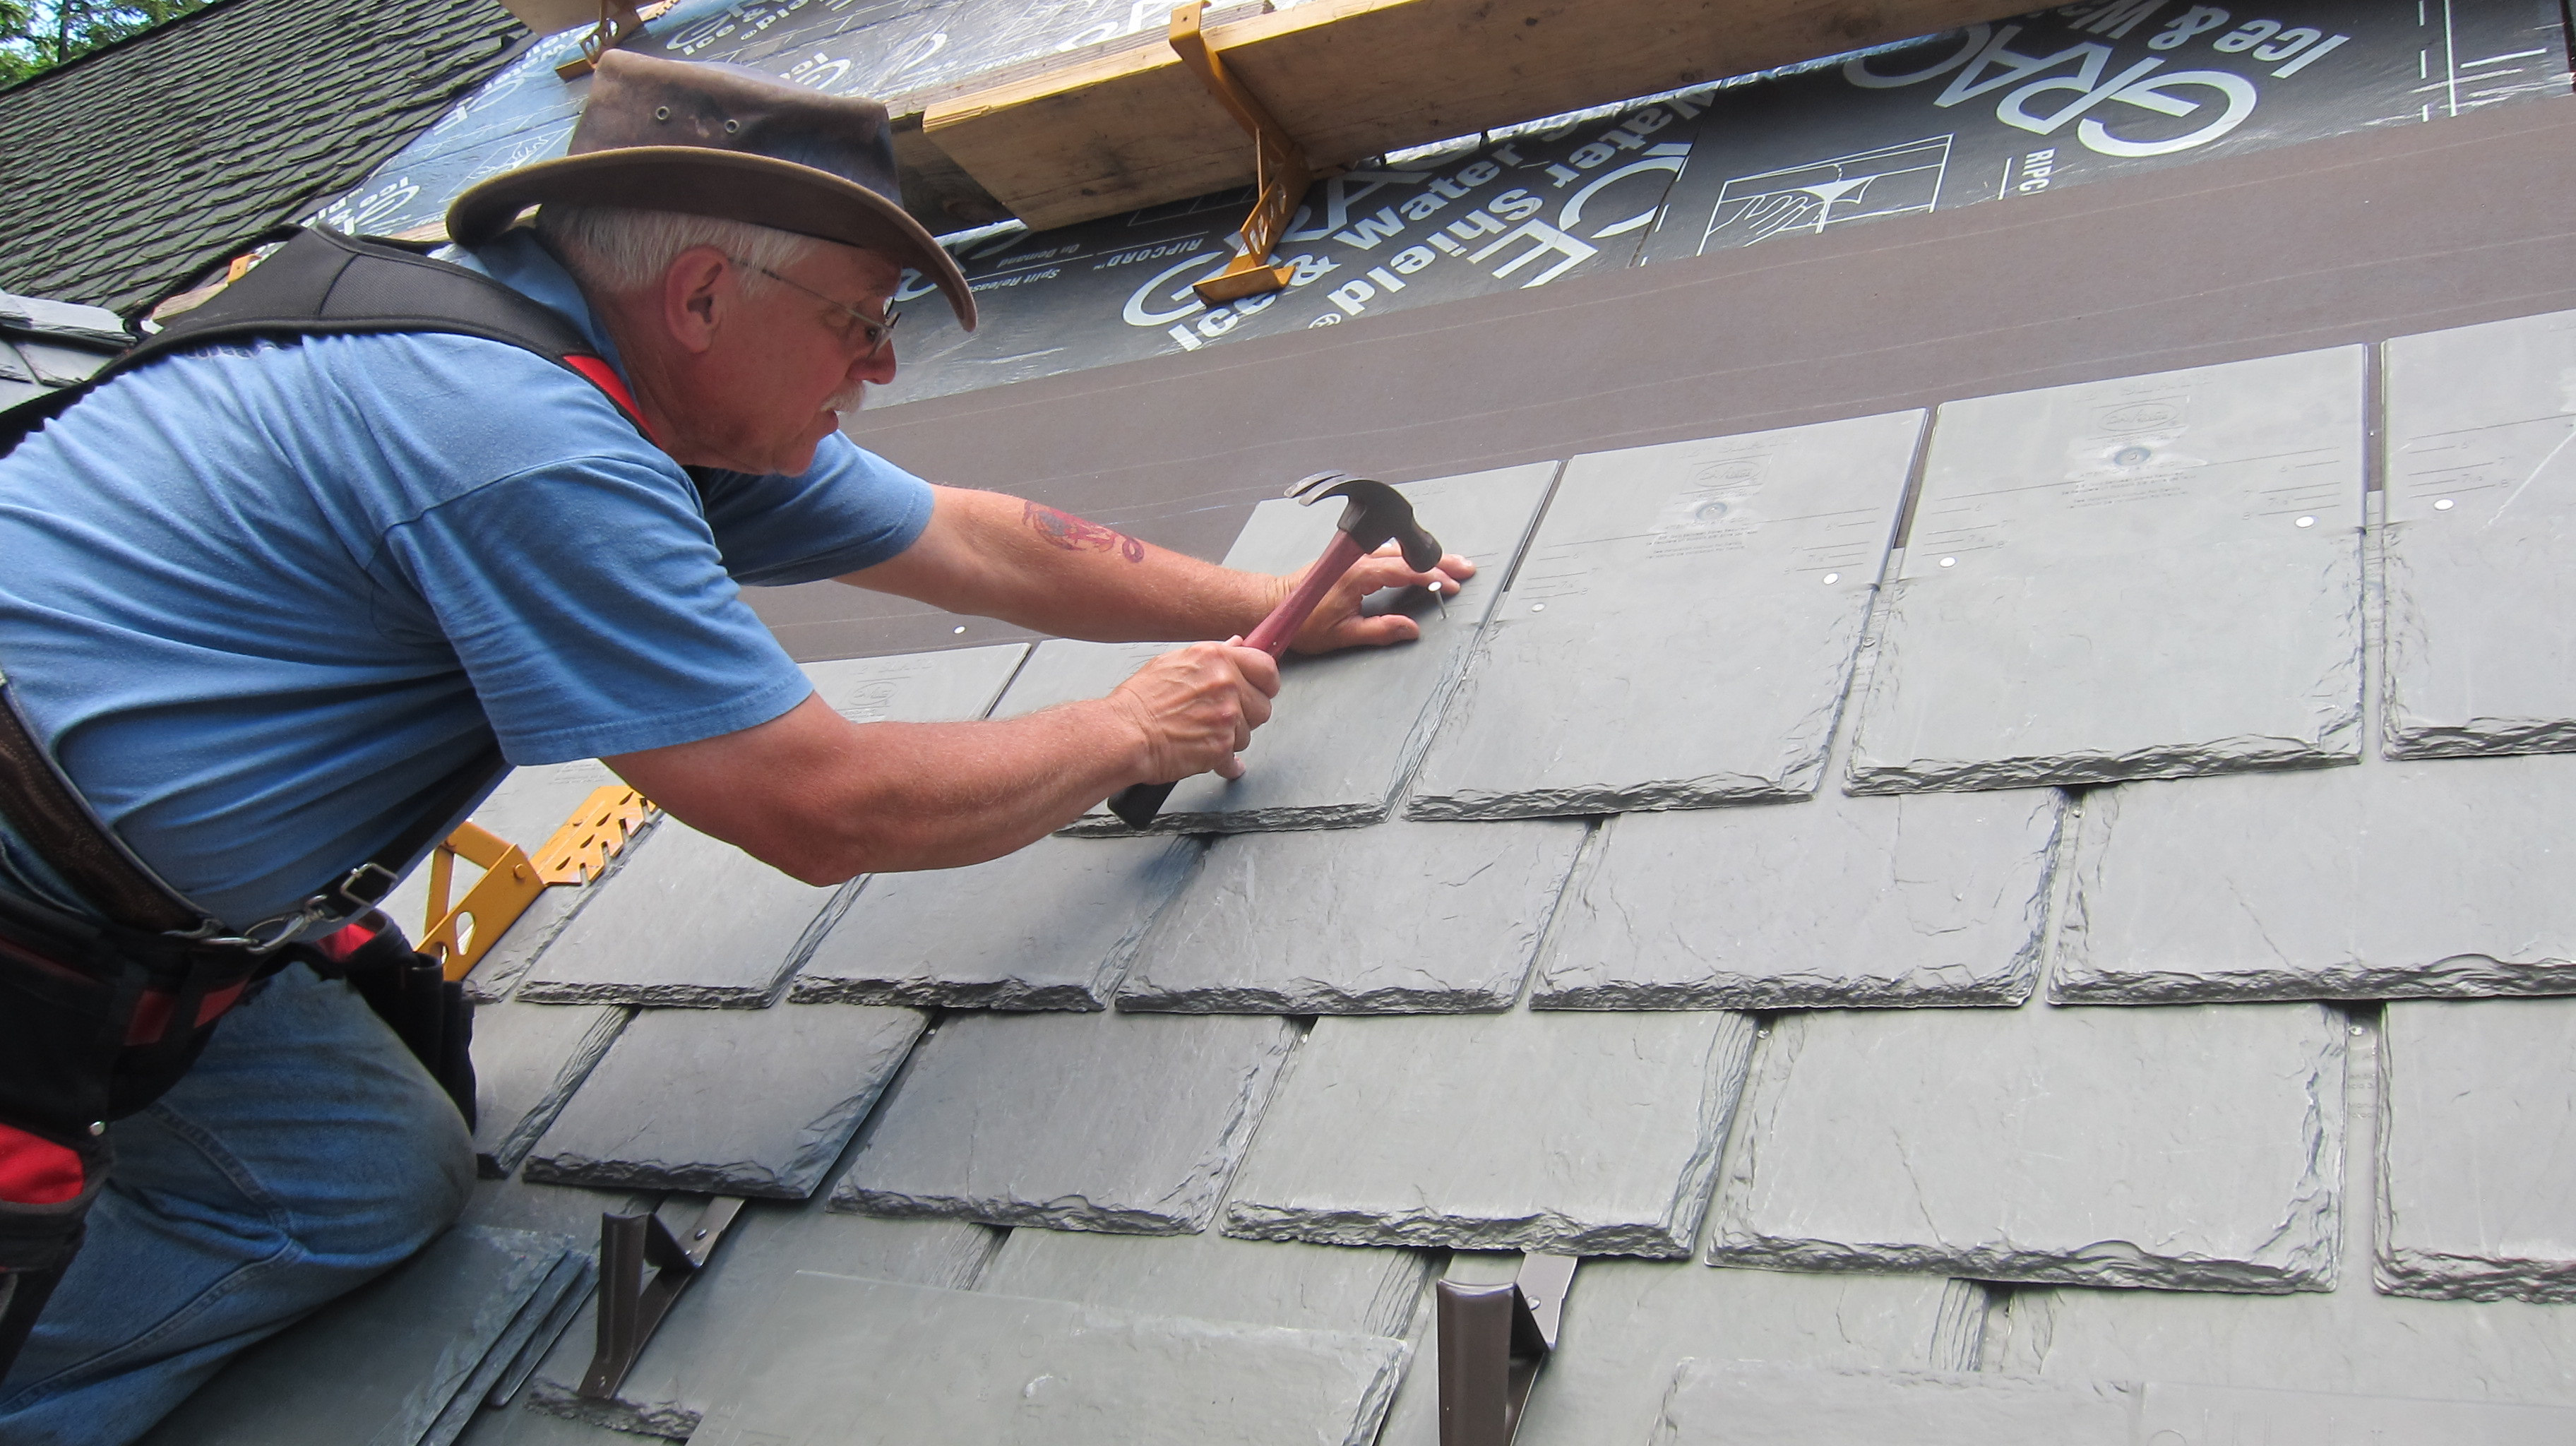 2016 energy awareness month bottom to top energy tips for for Davinci roof tiles pricing